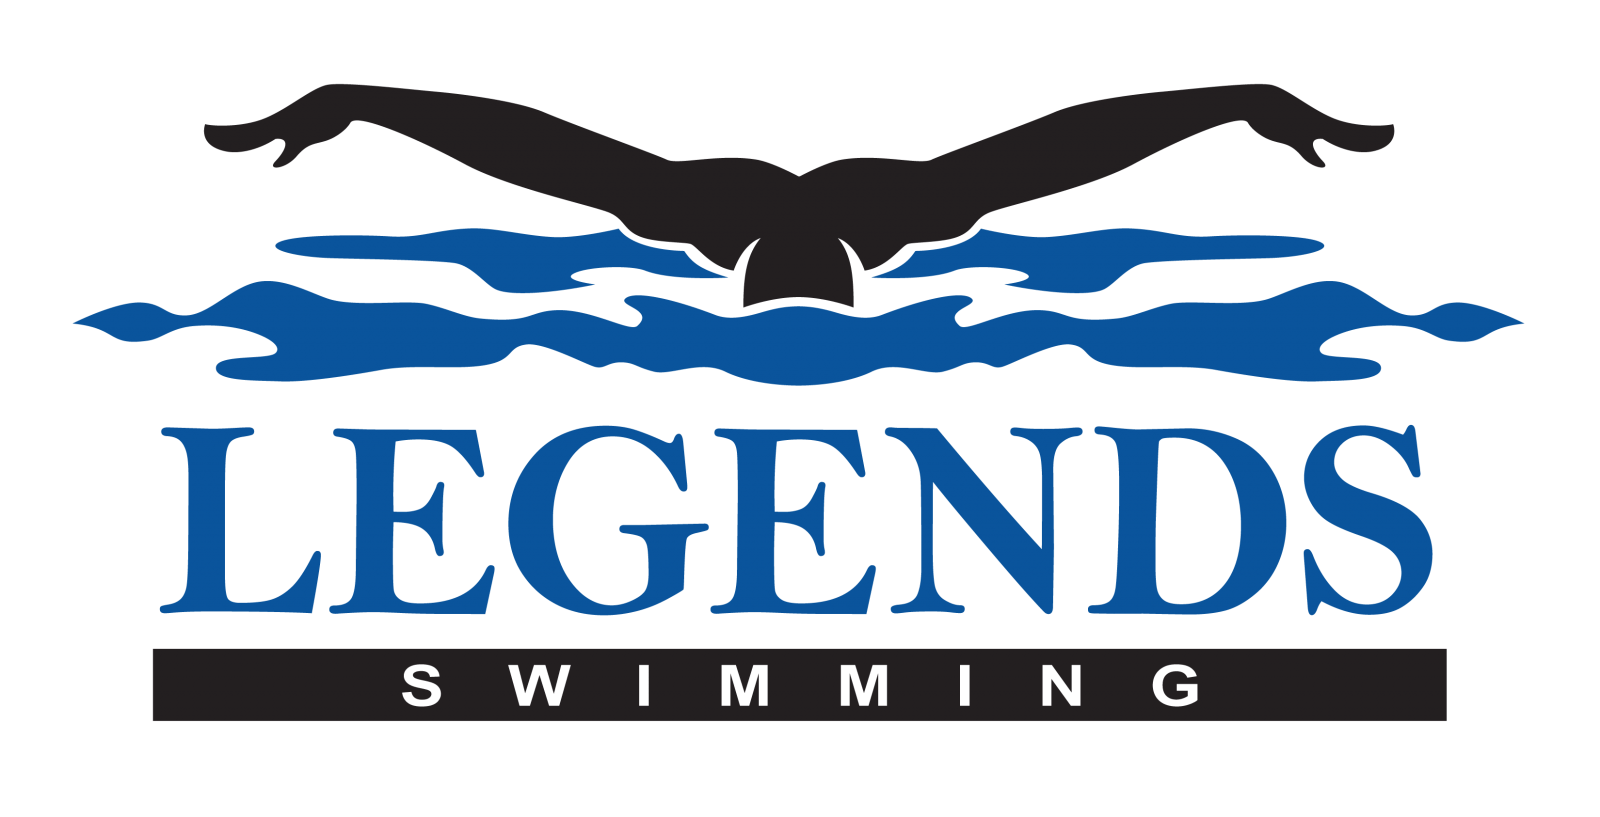 st john u2019s legends swim club seeks head coach old dominion logistics fargo nd old dominion log homes